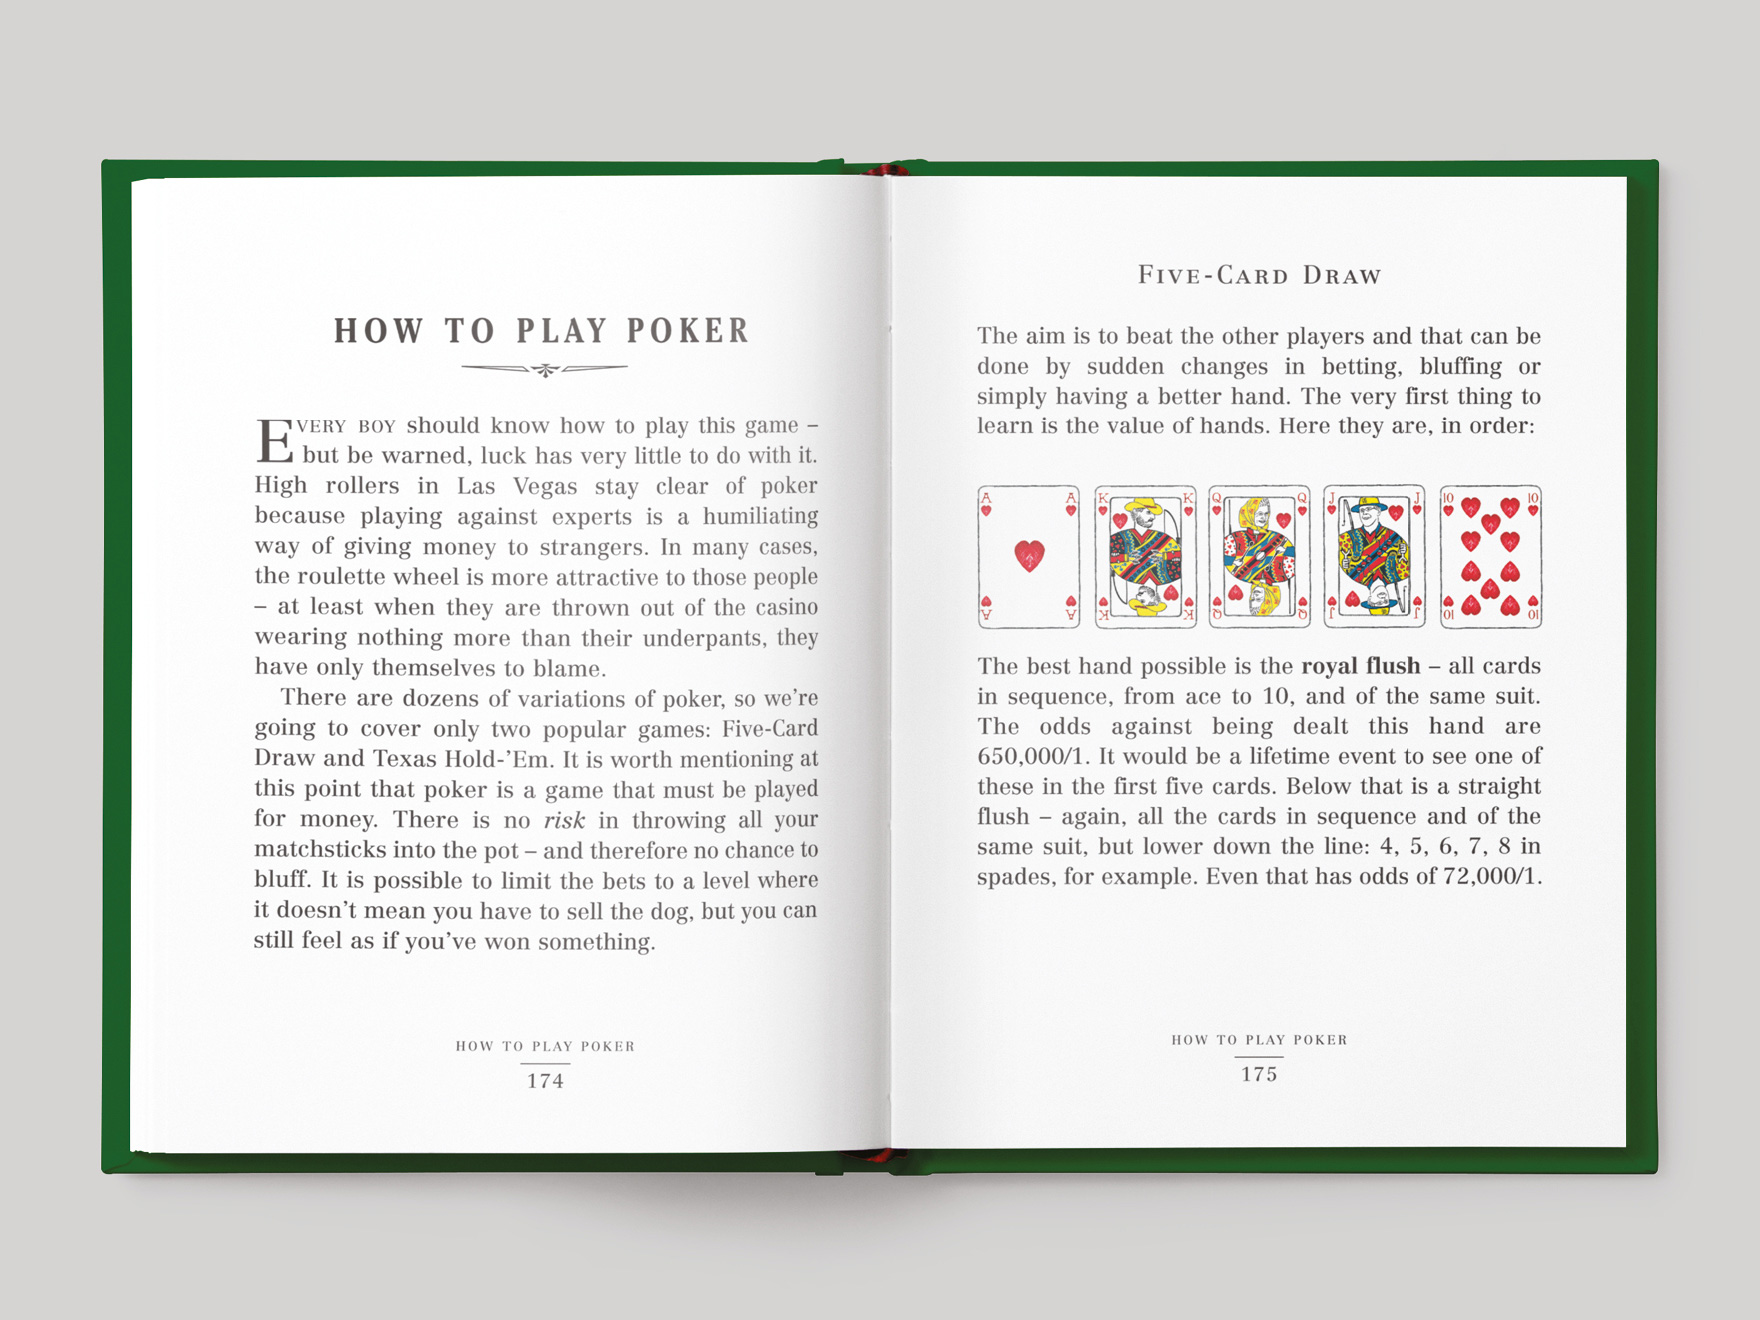 Inside pages from the Pocket Dangerous Book for Boys: Things to Do book showing how to play poker